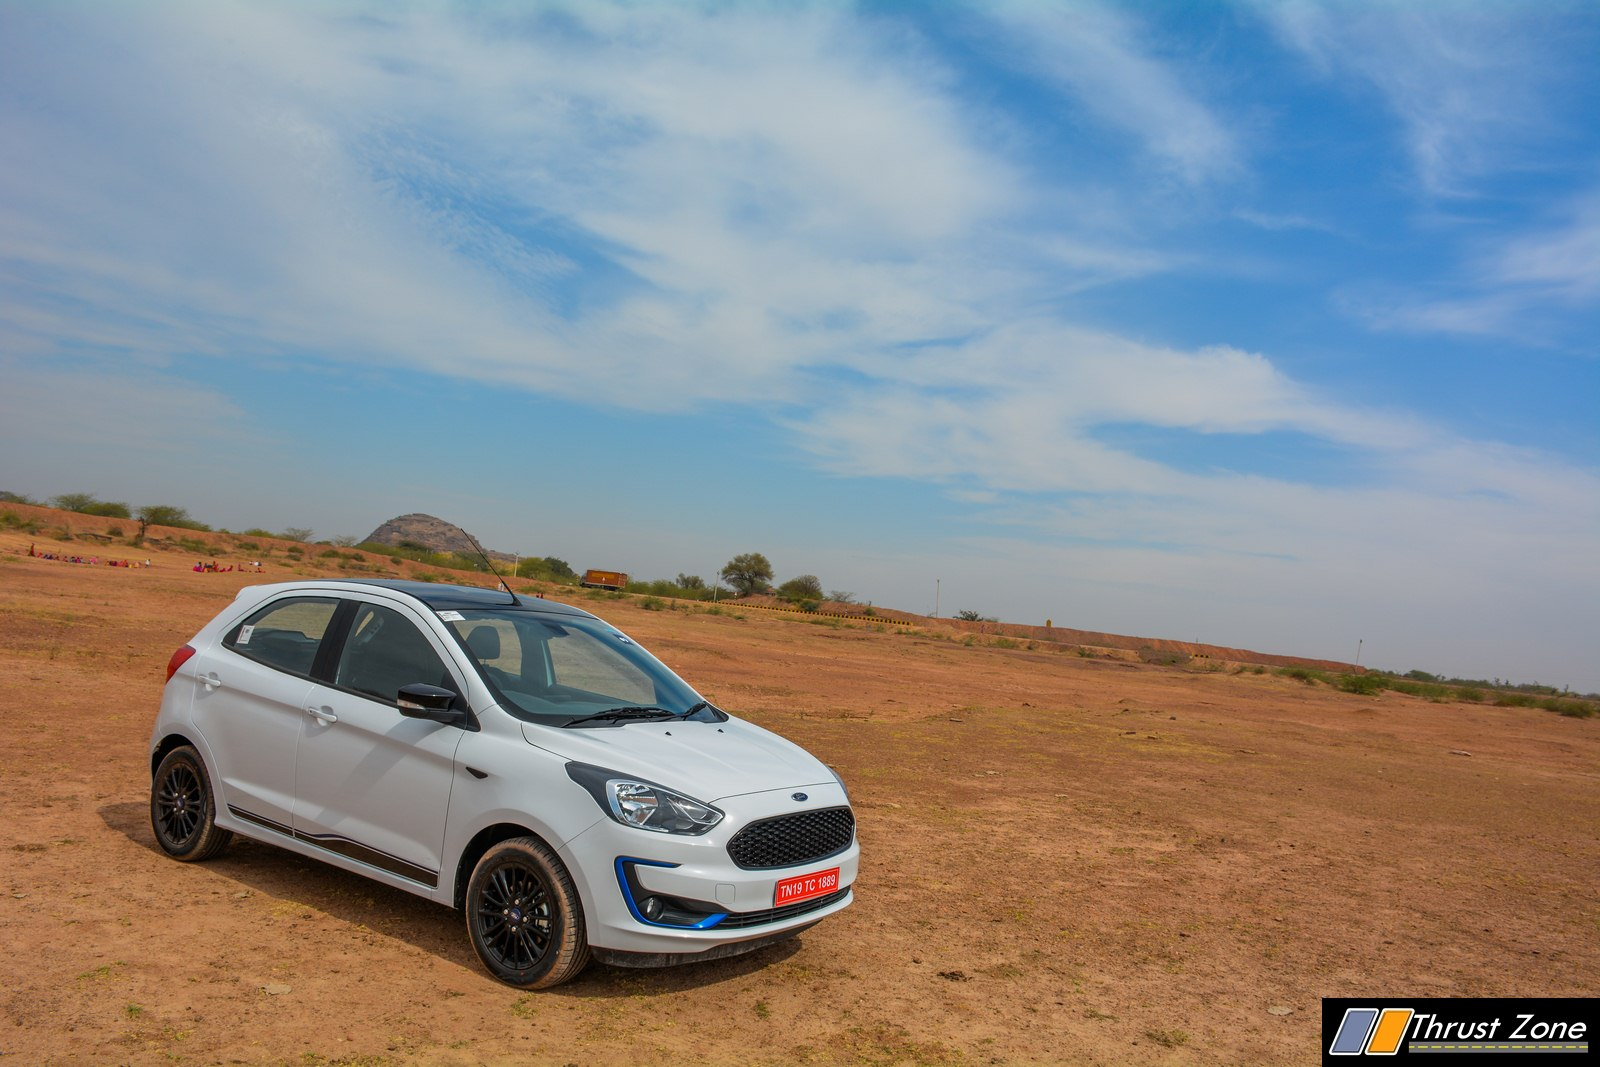 2019-Ford-Figo-Blu-Facelift-Review-14